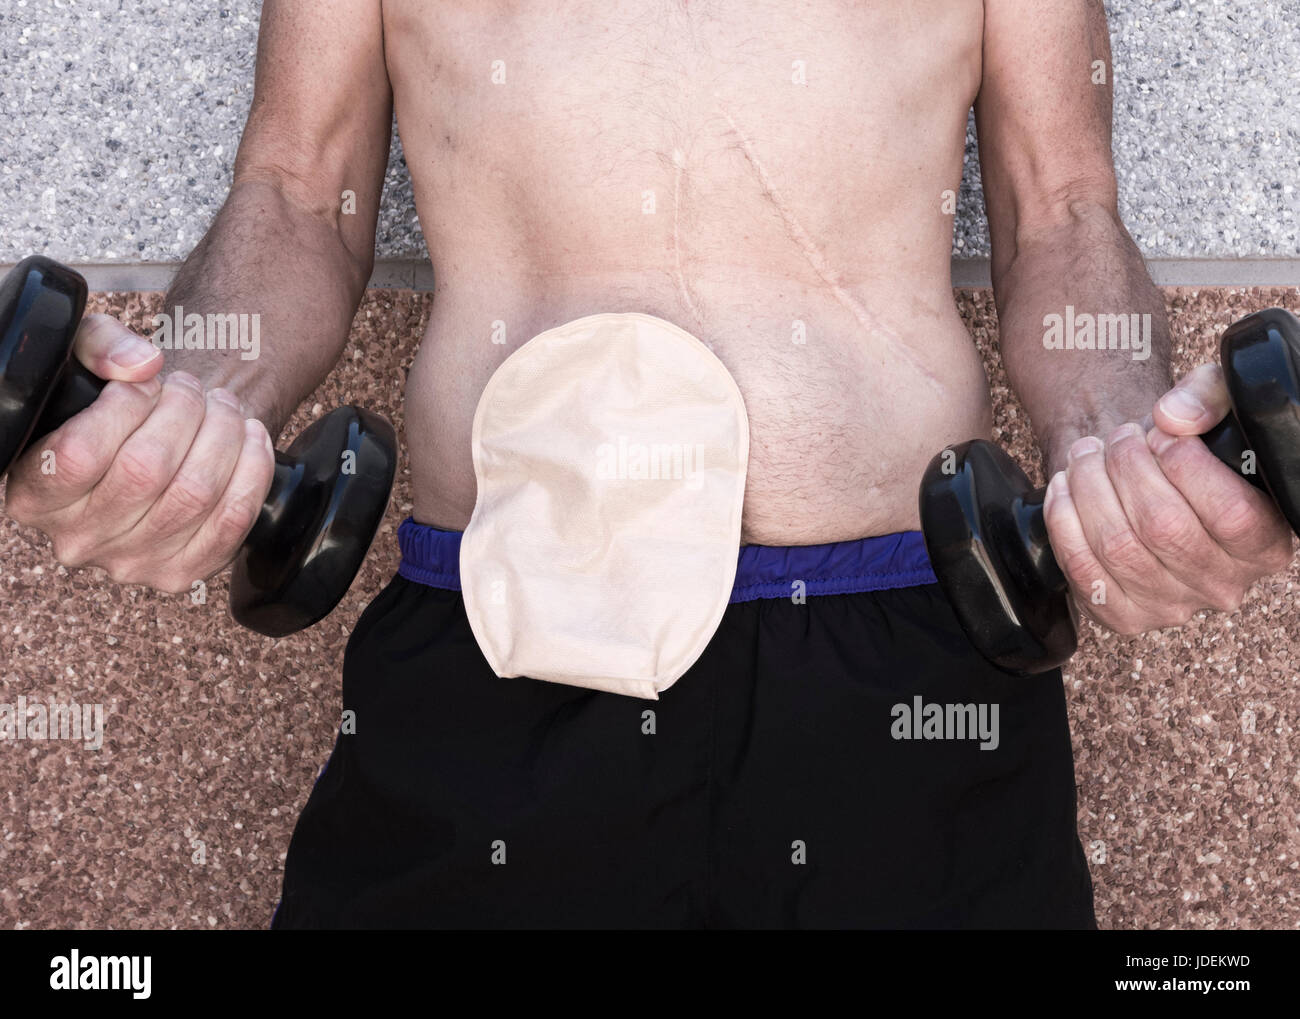 Healthy sixty year old man wearing ileostomy bag working out with weights. - Stock Image